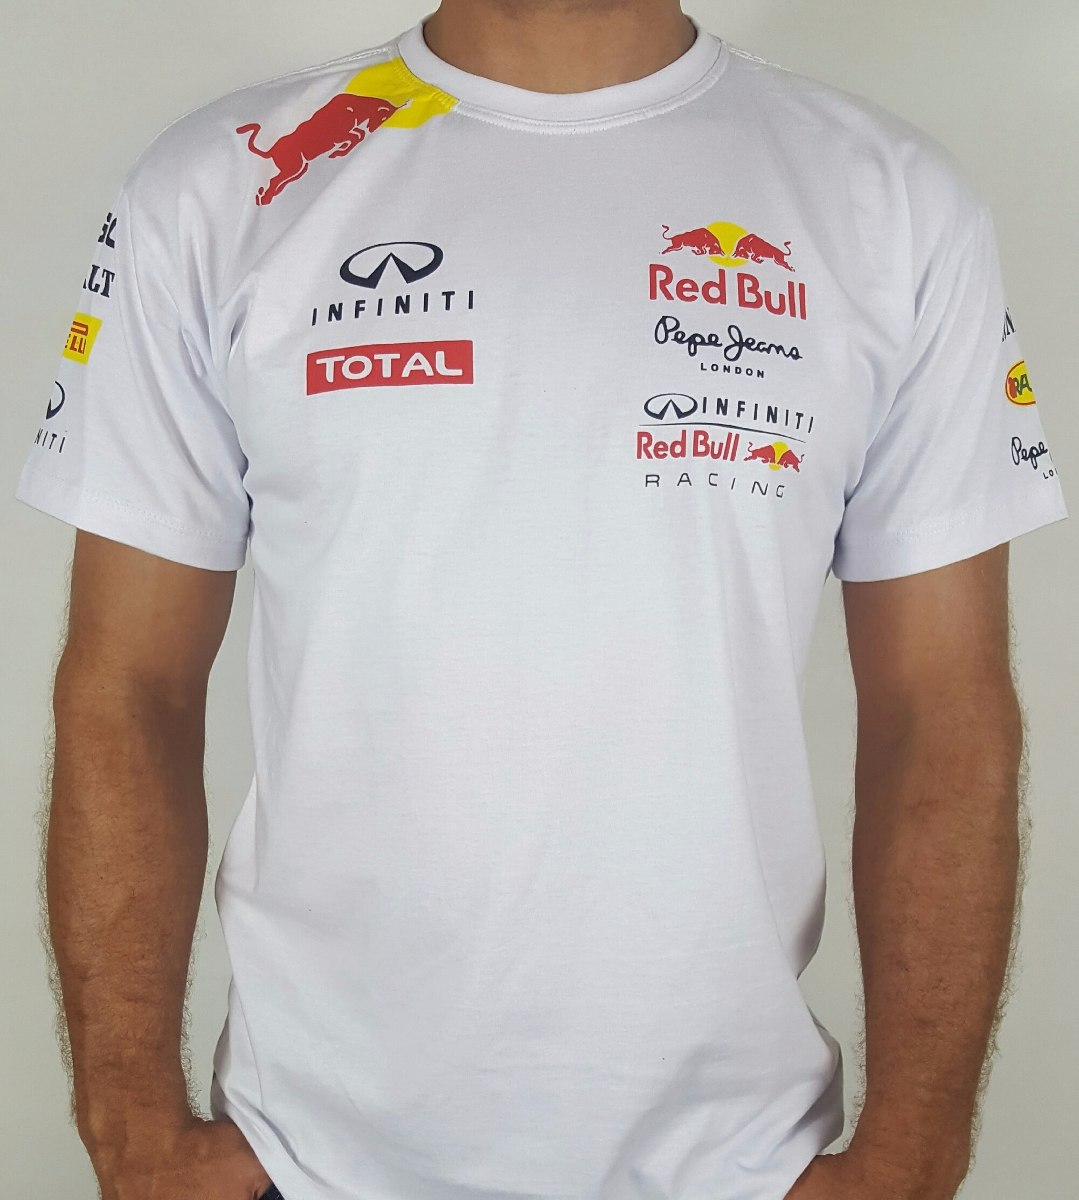 81d89f99c0 camiseta red bull racing branca infiniti london. Carregando zoom.